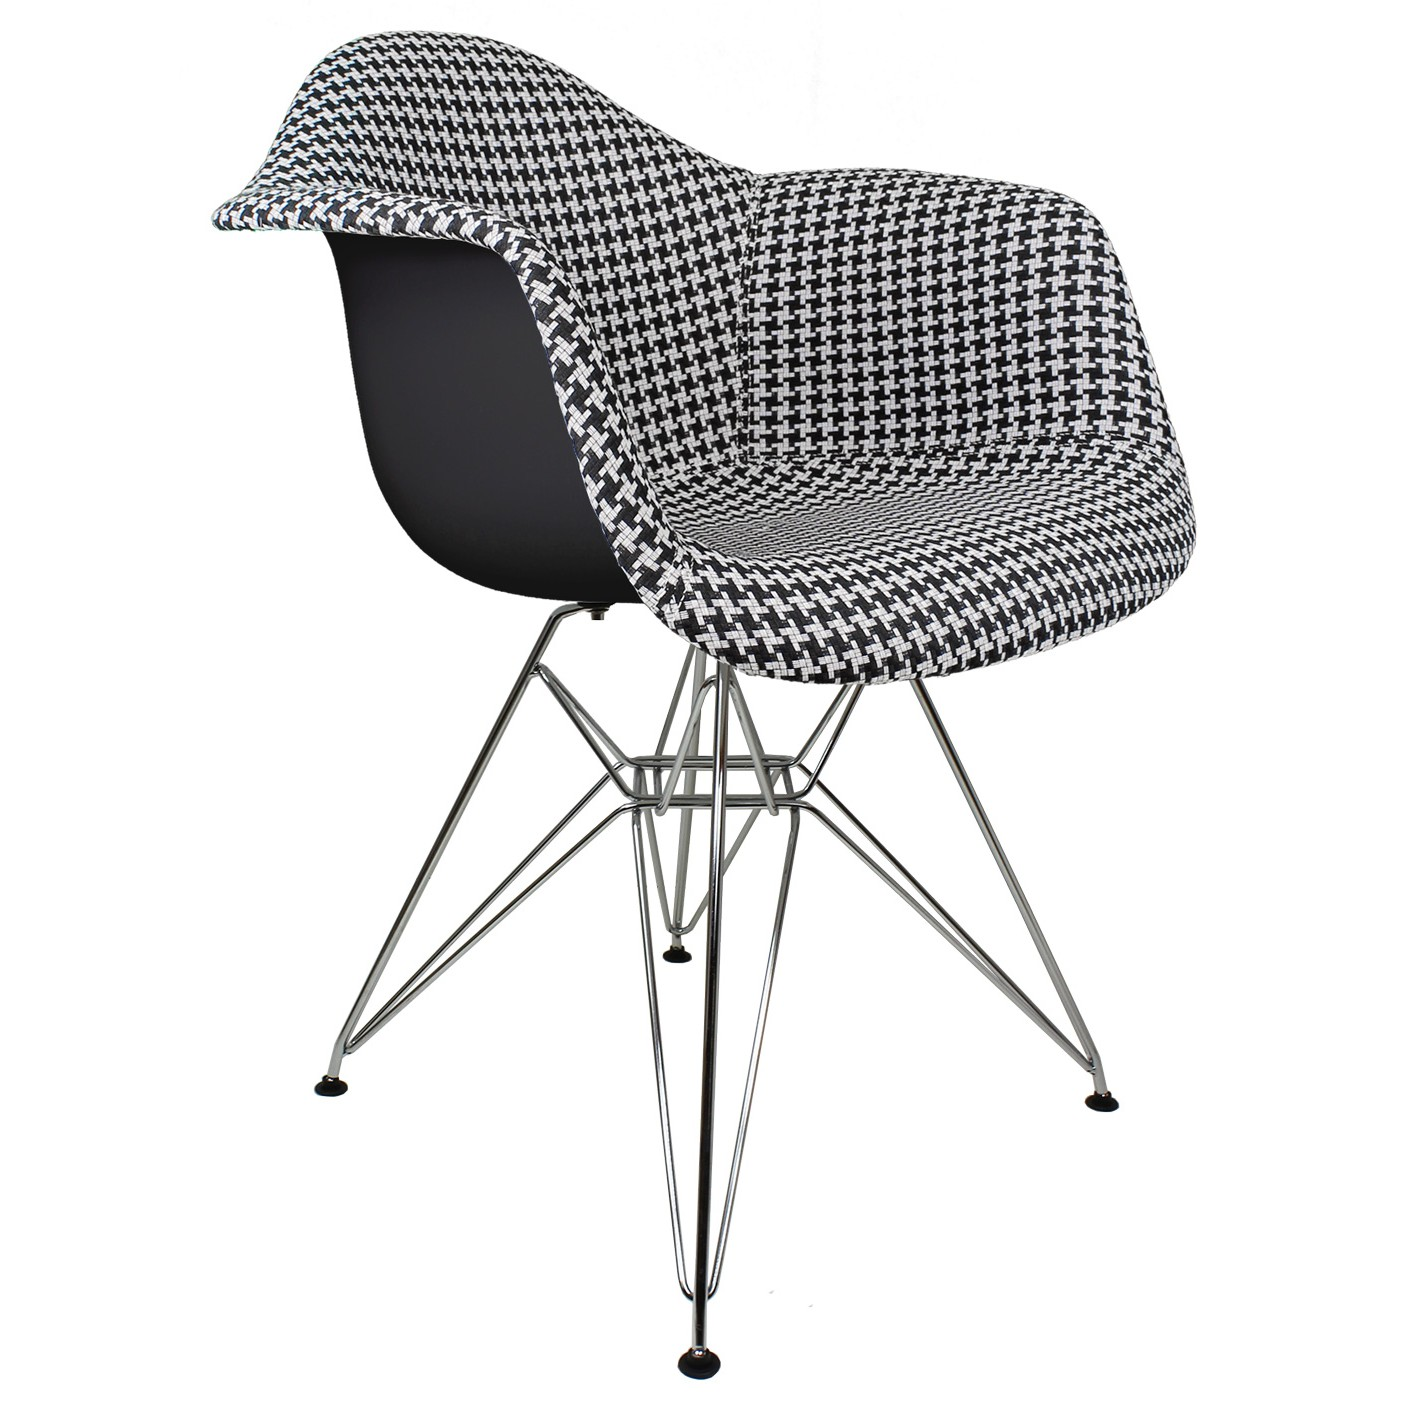 Houndstooth Pattern Woven Fabric Upholstered Black Accent Arm Chair